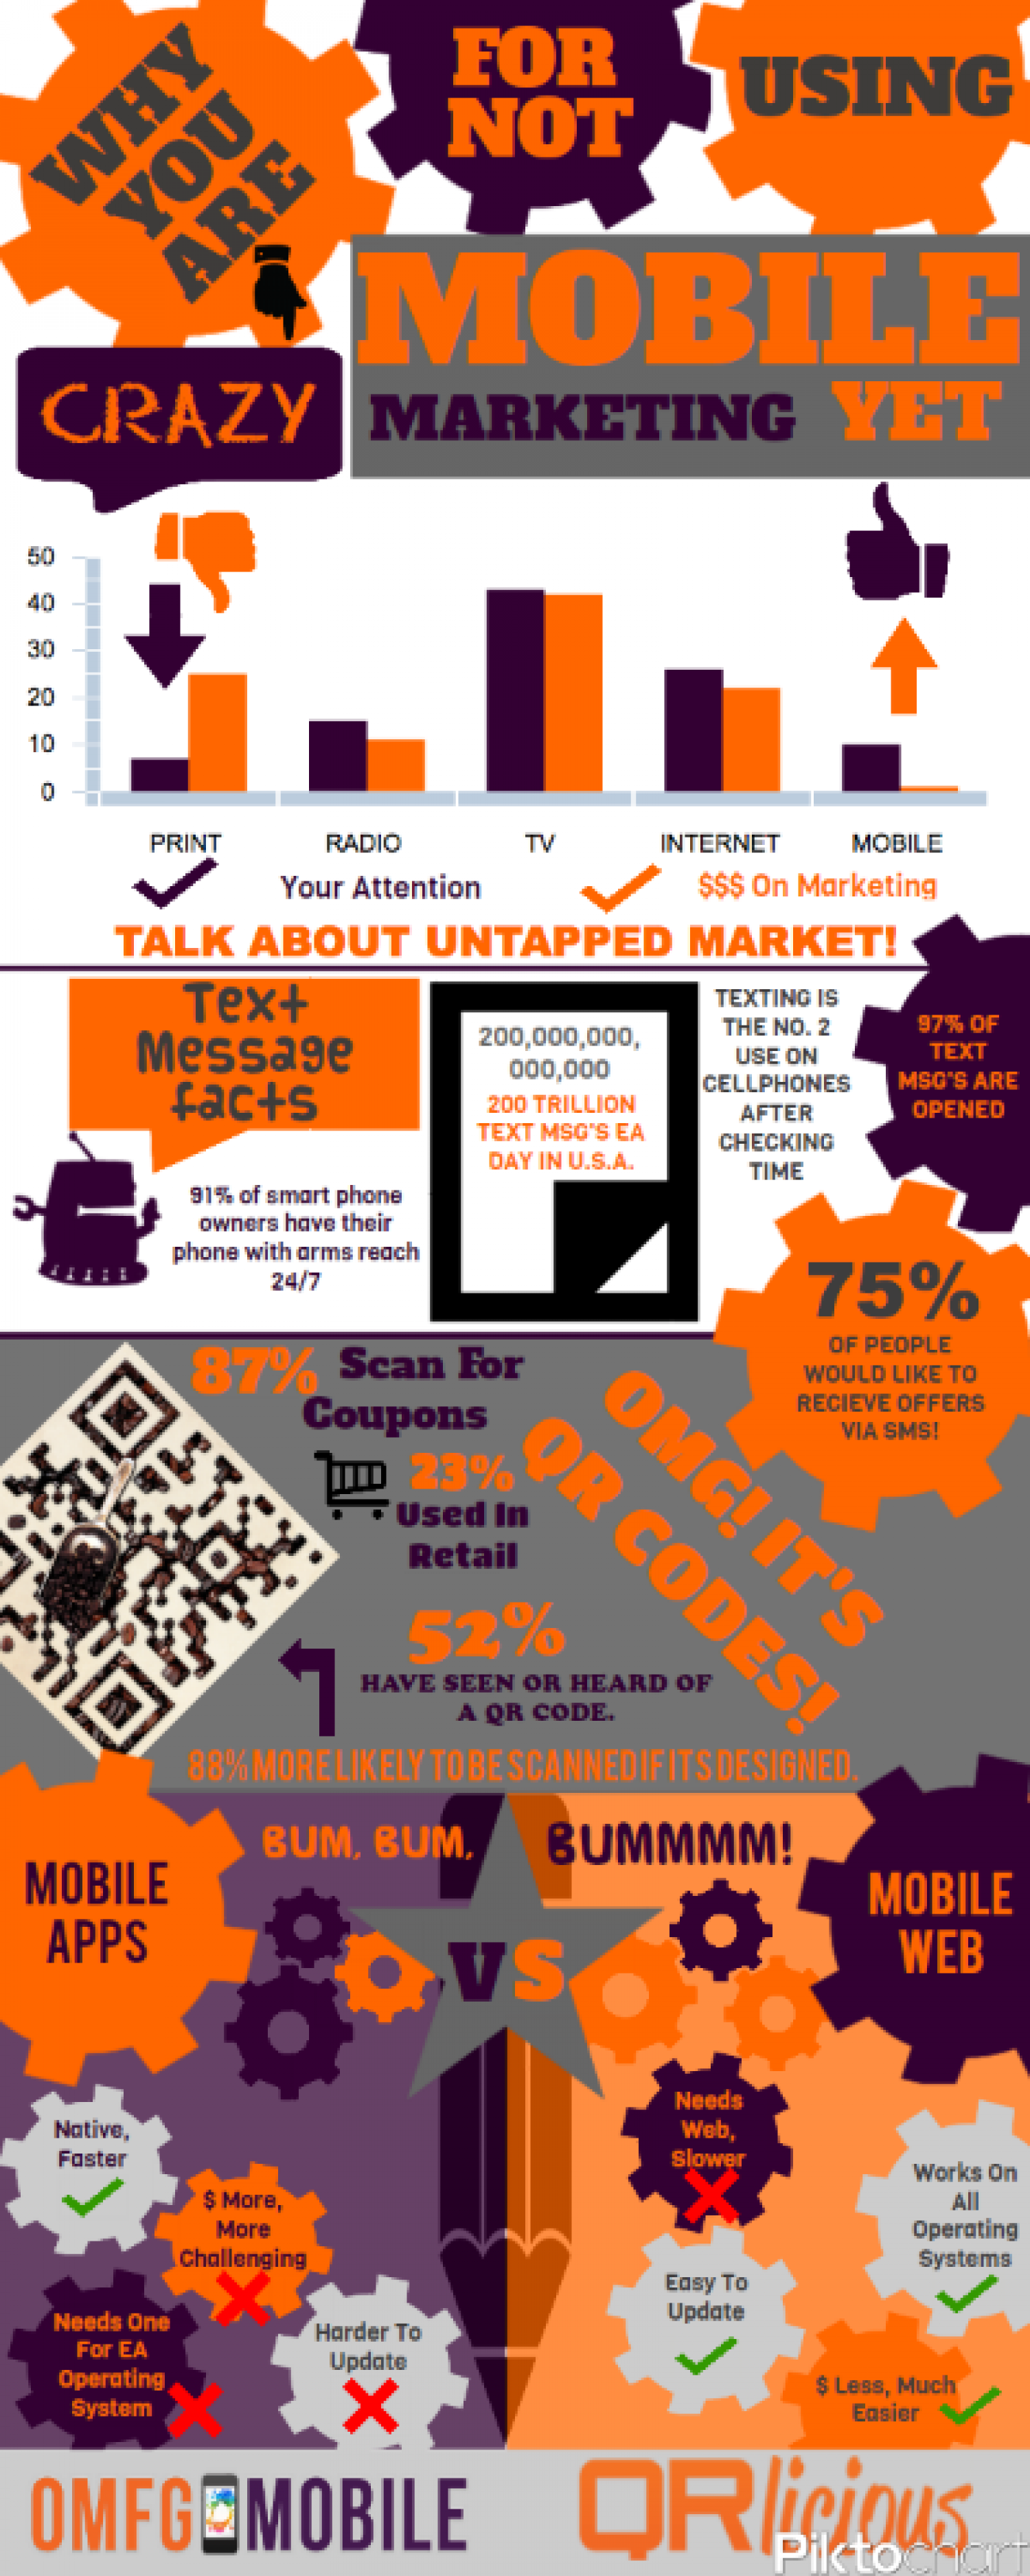 Why You Are Crazy For Not Using Mobile Marketing Infographic